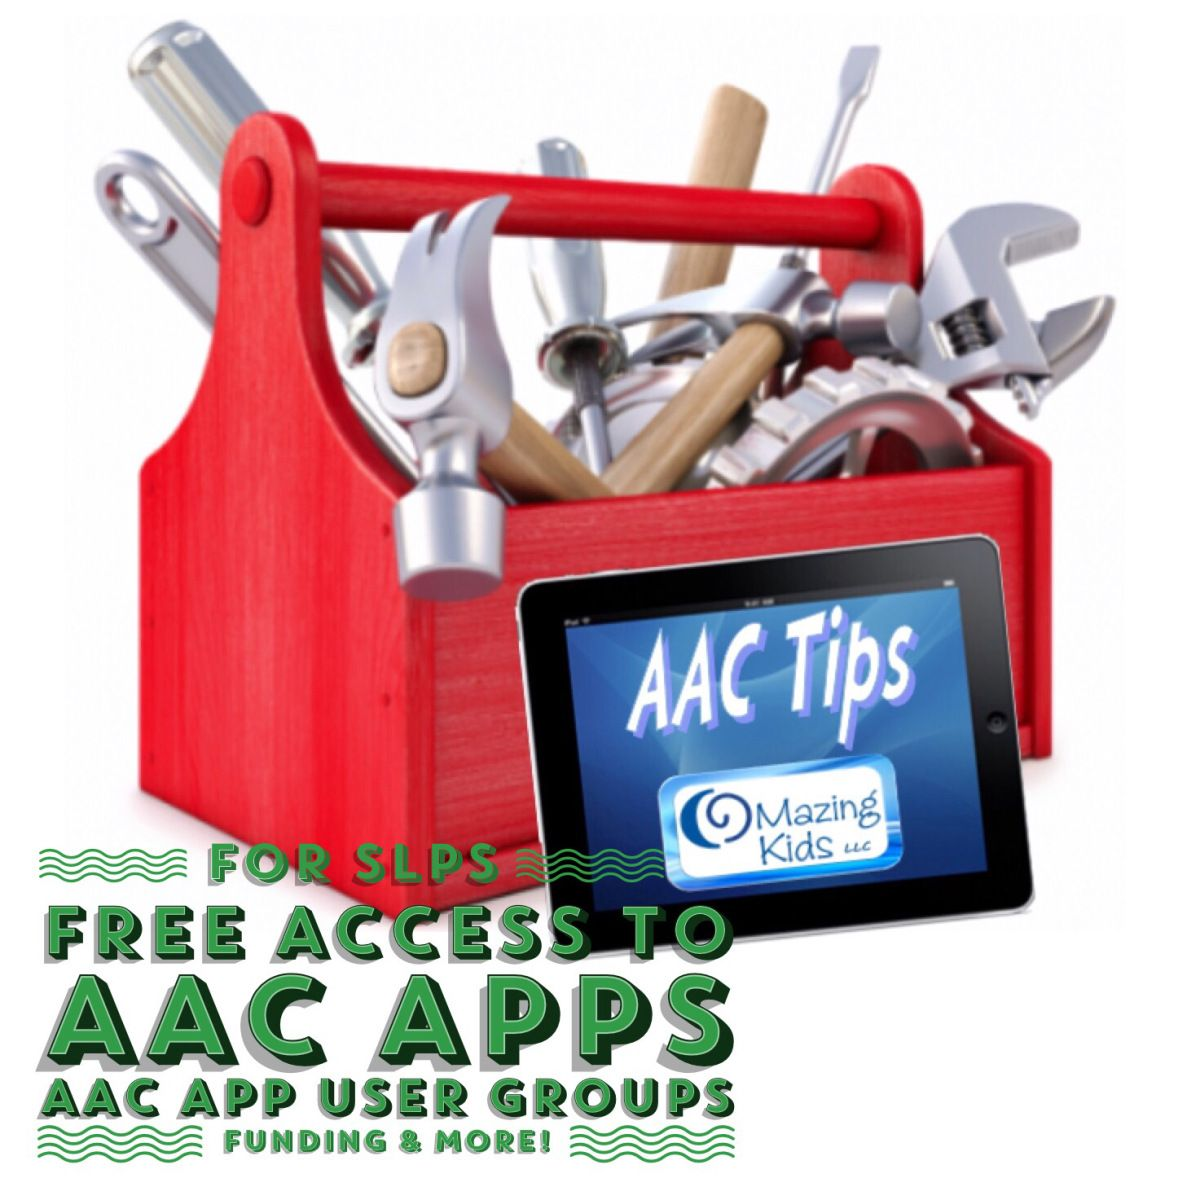 . {AAC Tips} How SLPs can get FREE access to AAC apps, AAC app user groups, funding options & more! I have seen no less than 10 posts in a variety of Facebook groups this week from SLPs asking …